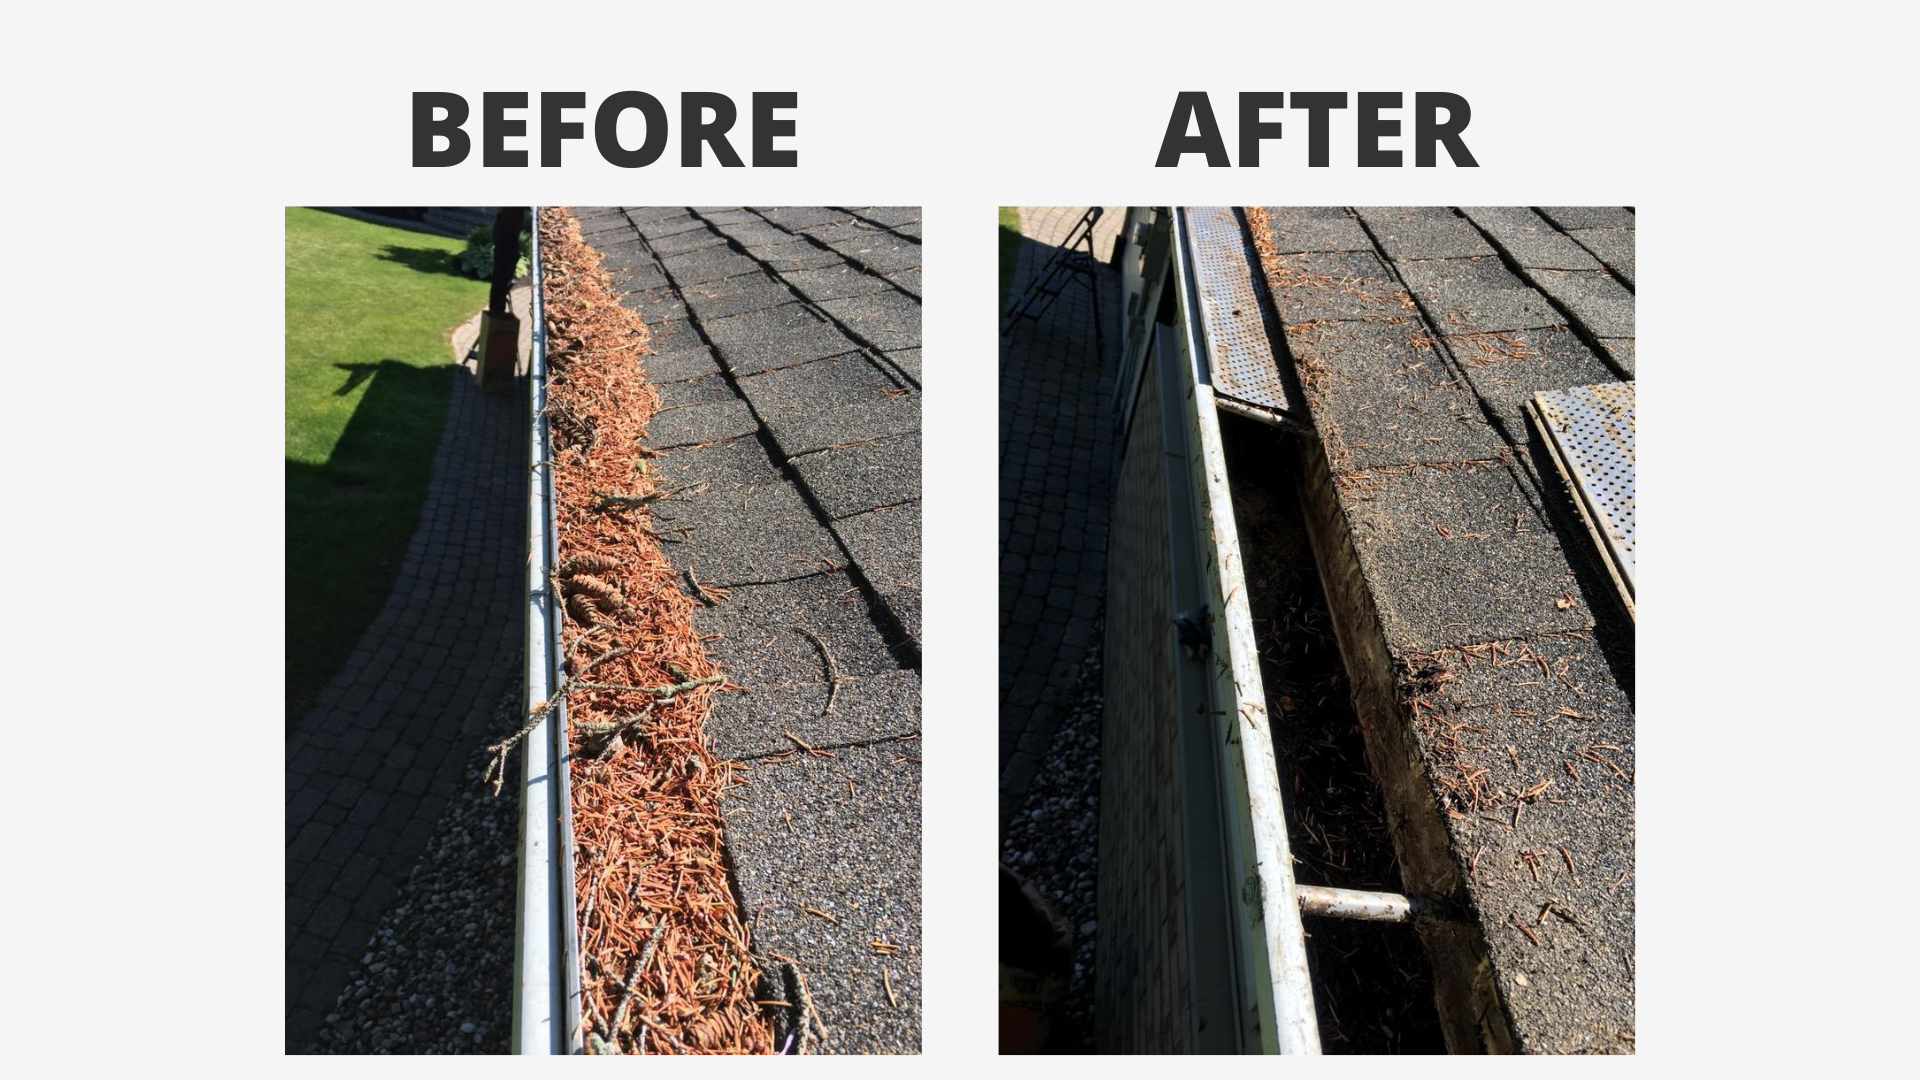 two images of a gutter before and after being cleaned